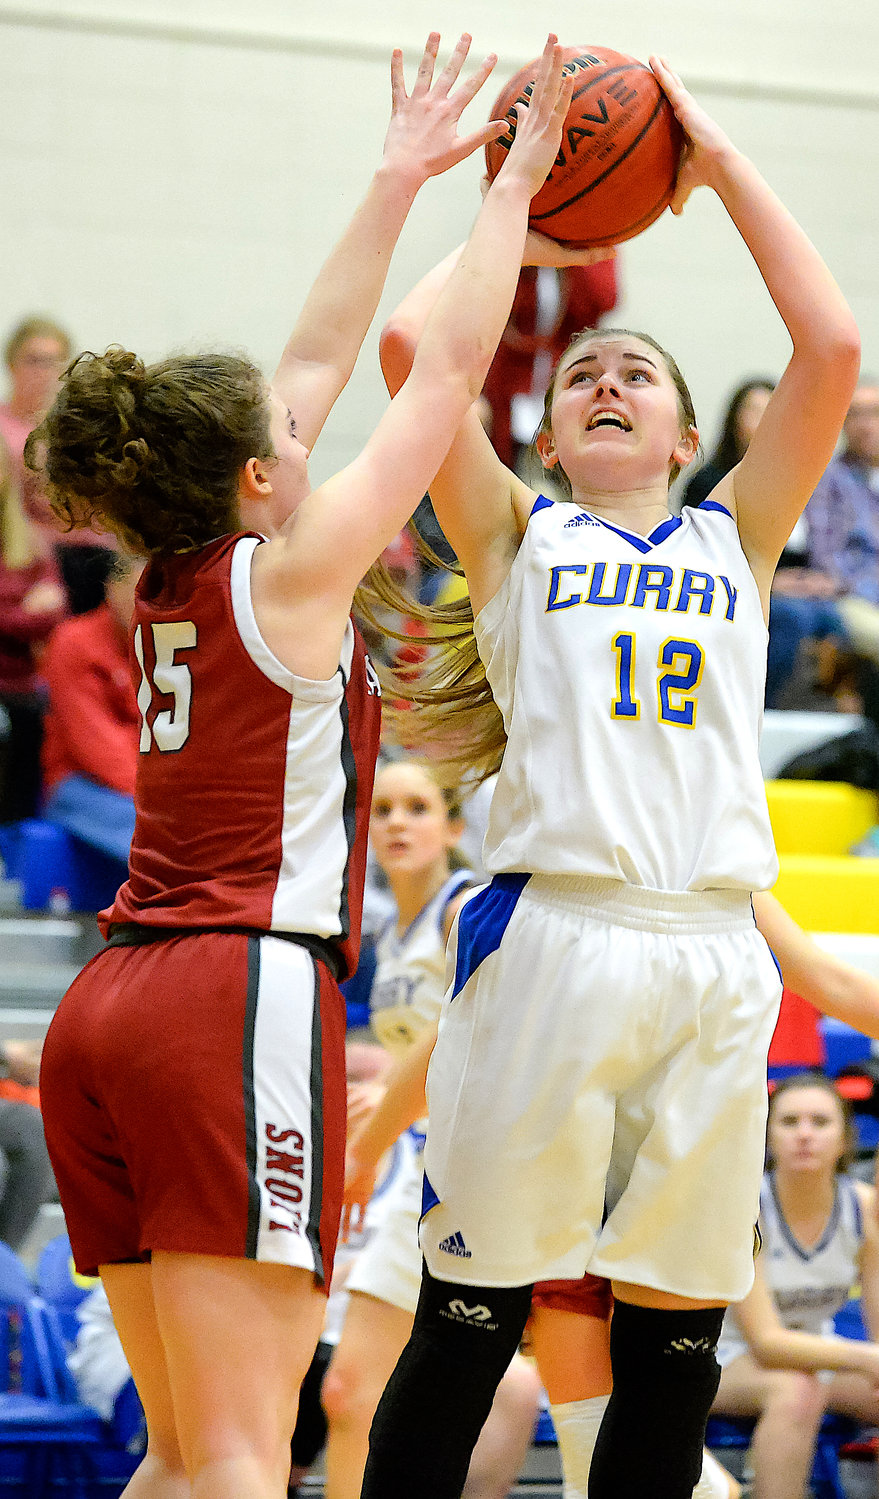 Curry's Morgan Davidson (12) shoots over Haleyville's Alli Temple (15) during the Class 4A, Area 11 Tournament championship game at Curry on Thursday night. Haleyville's girls and boys both won area tournament titles.